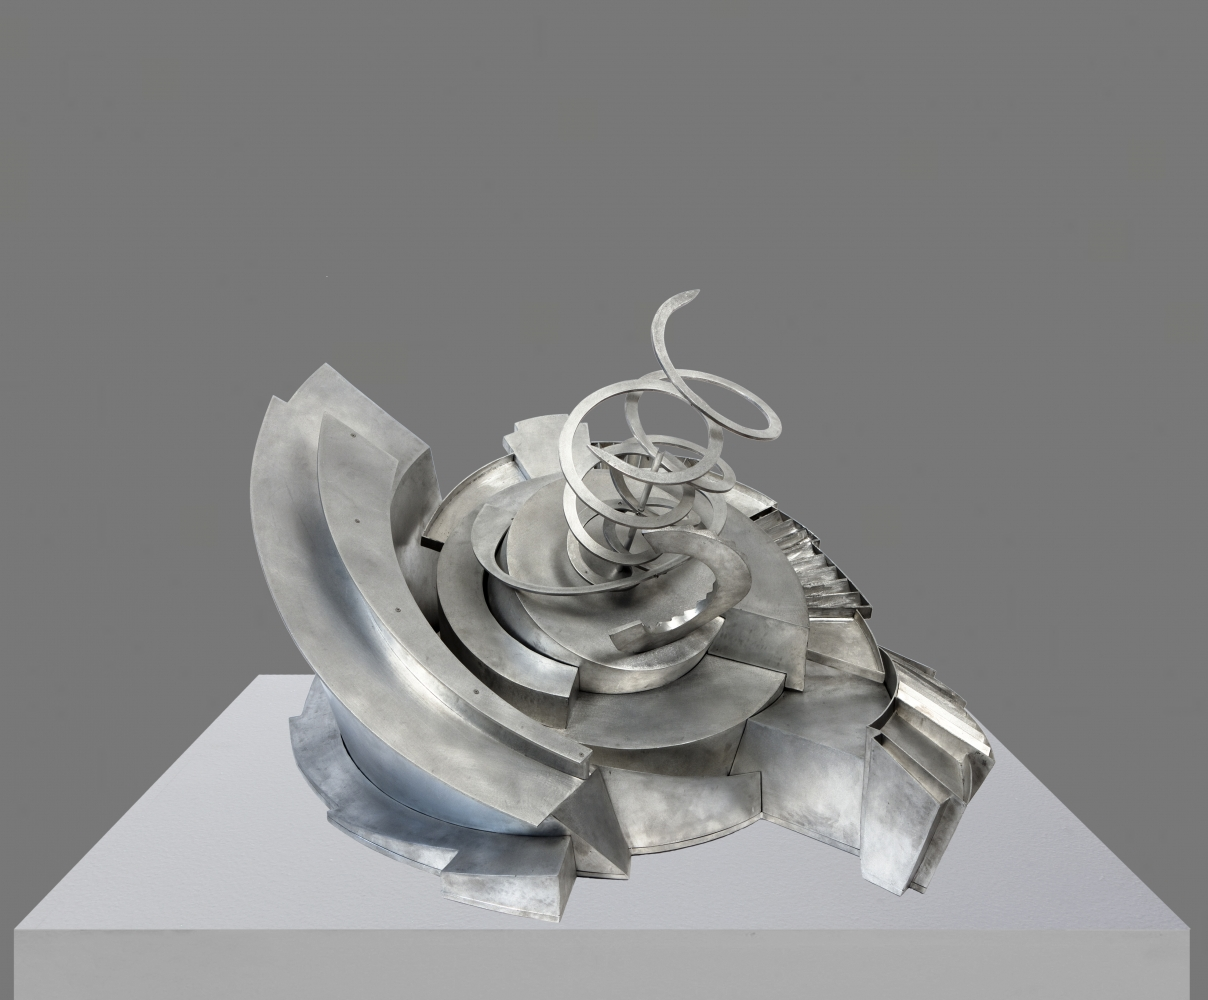 Aluminum maze sculpture by Alice Aycock